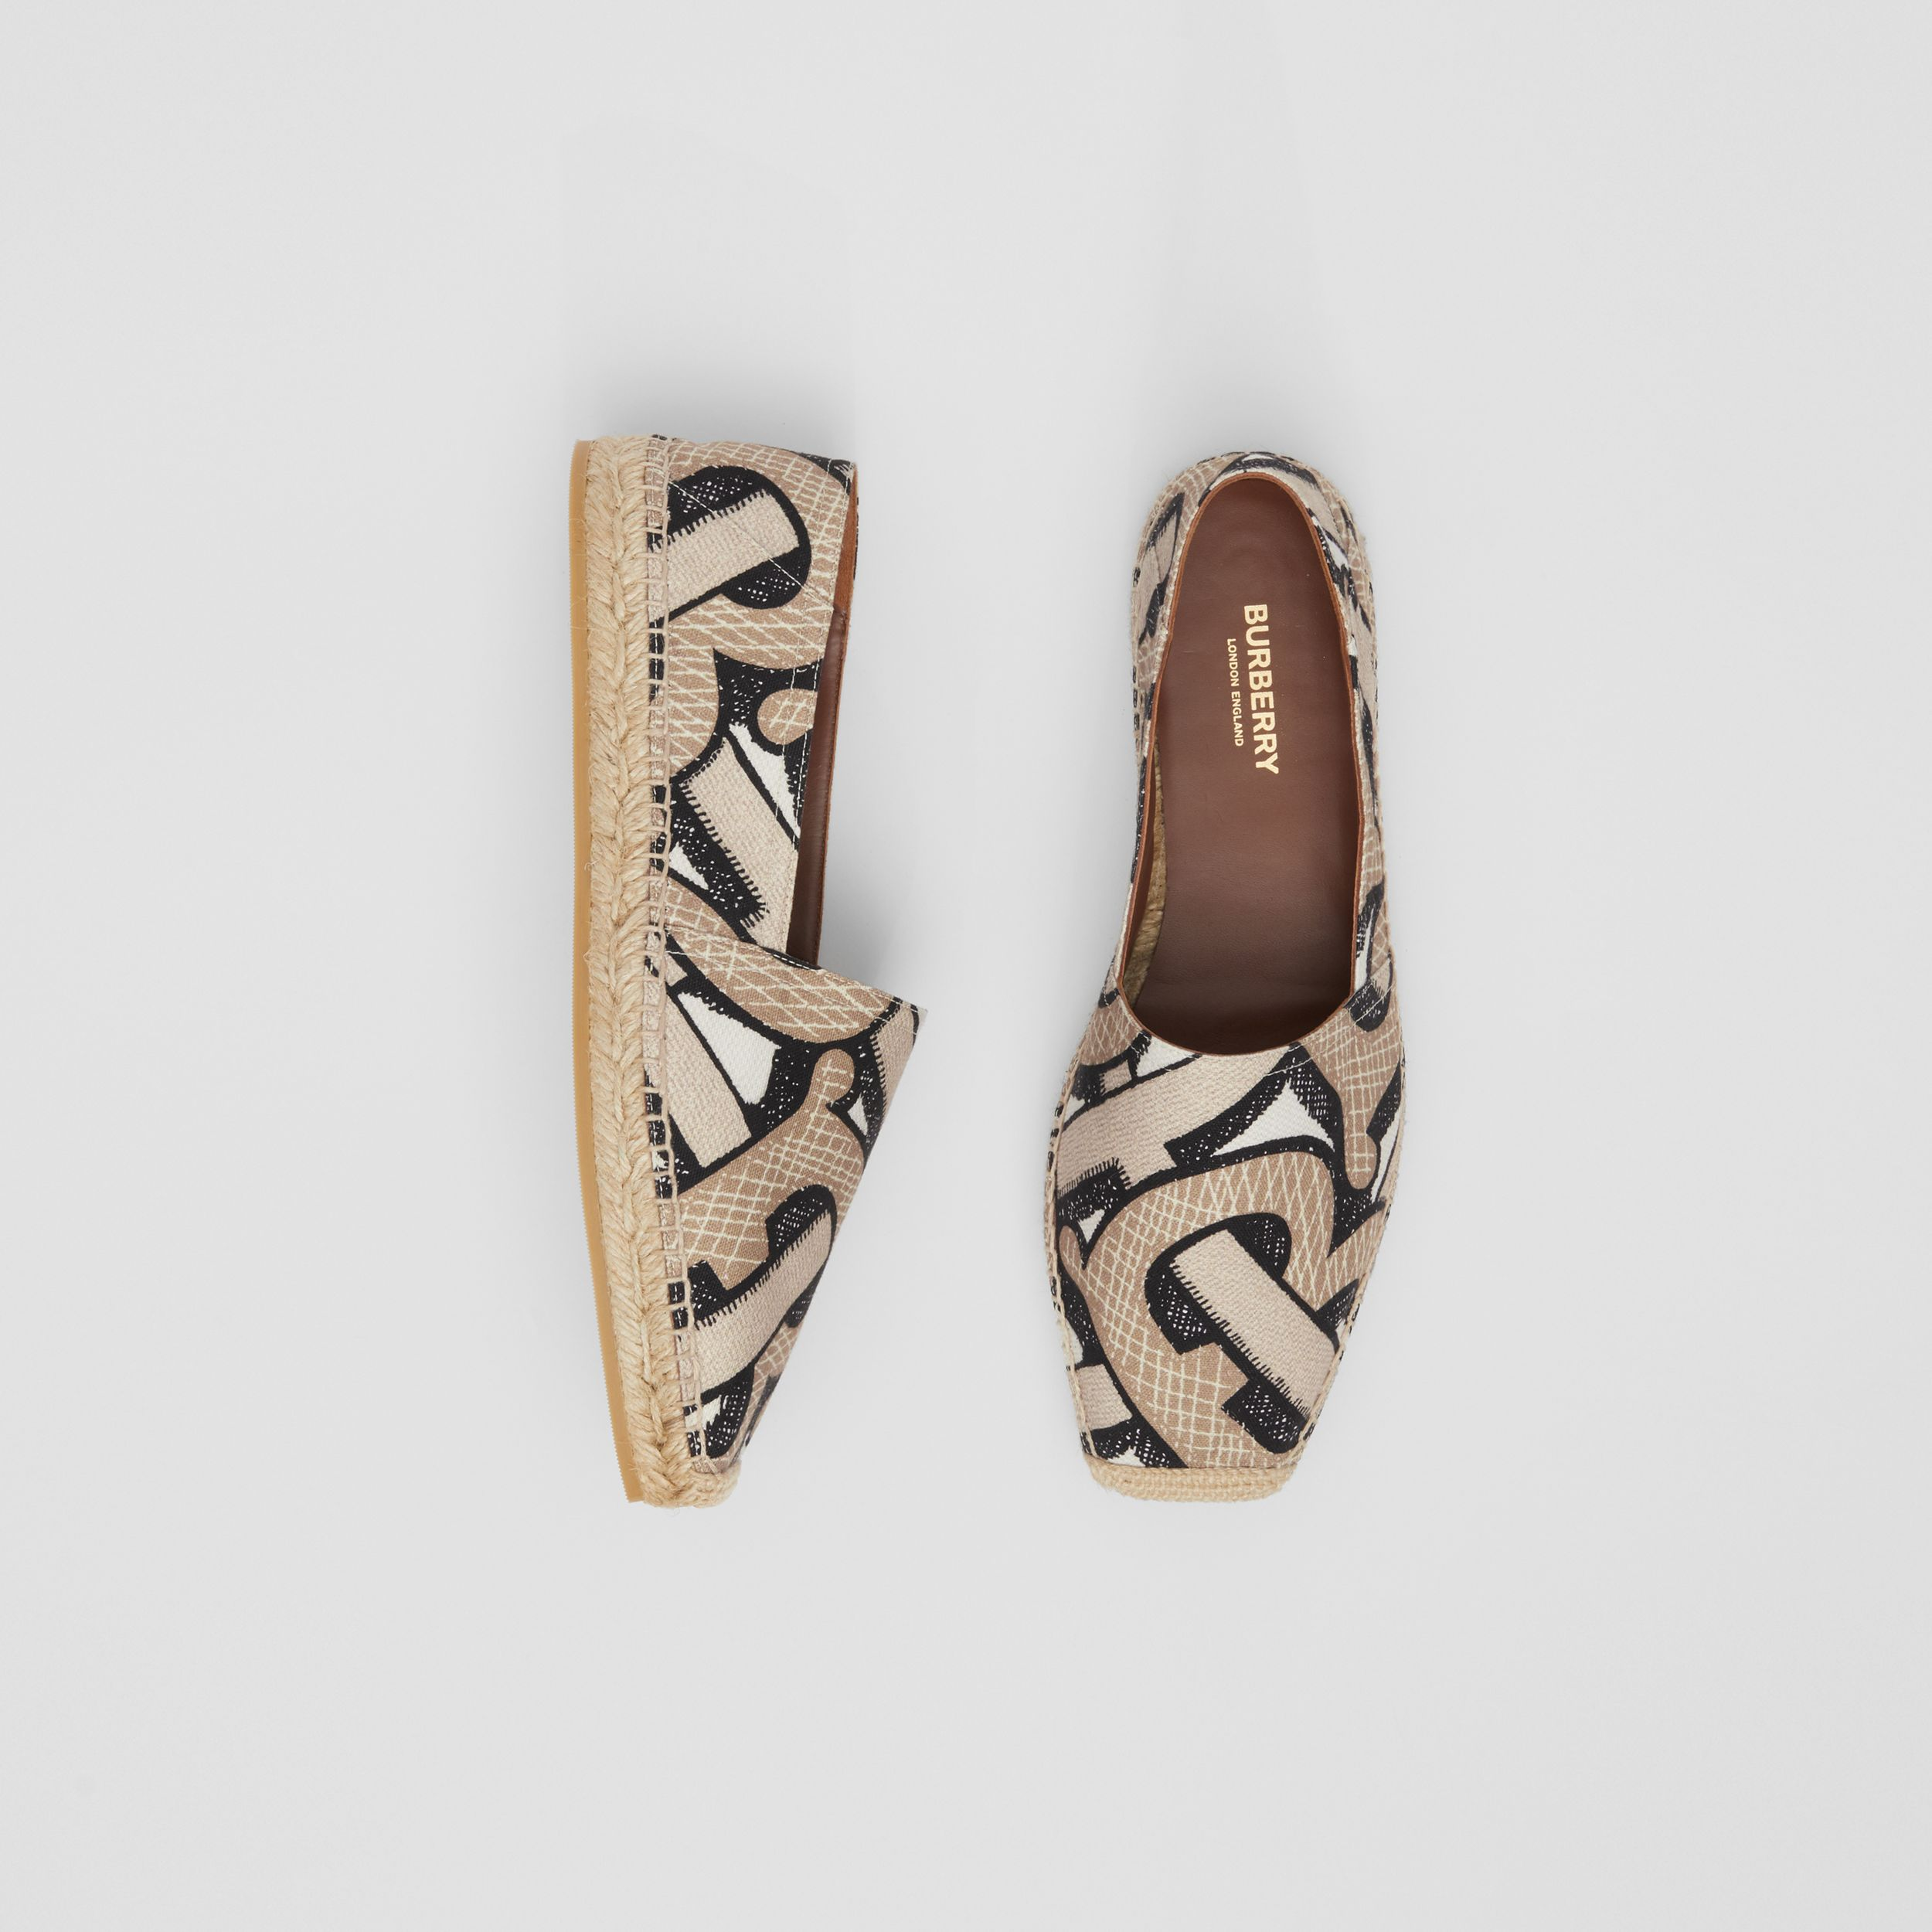 Monogram Print Cotton Canvas Espadrilles in Dark Beige - Women | Burberry - 1